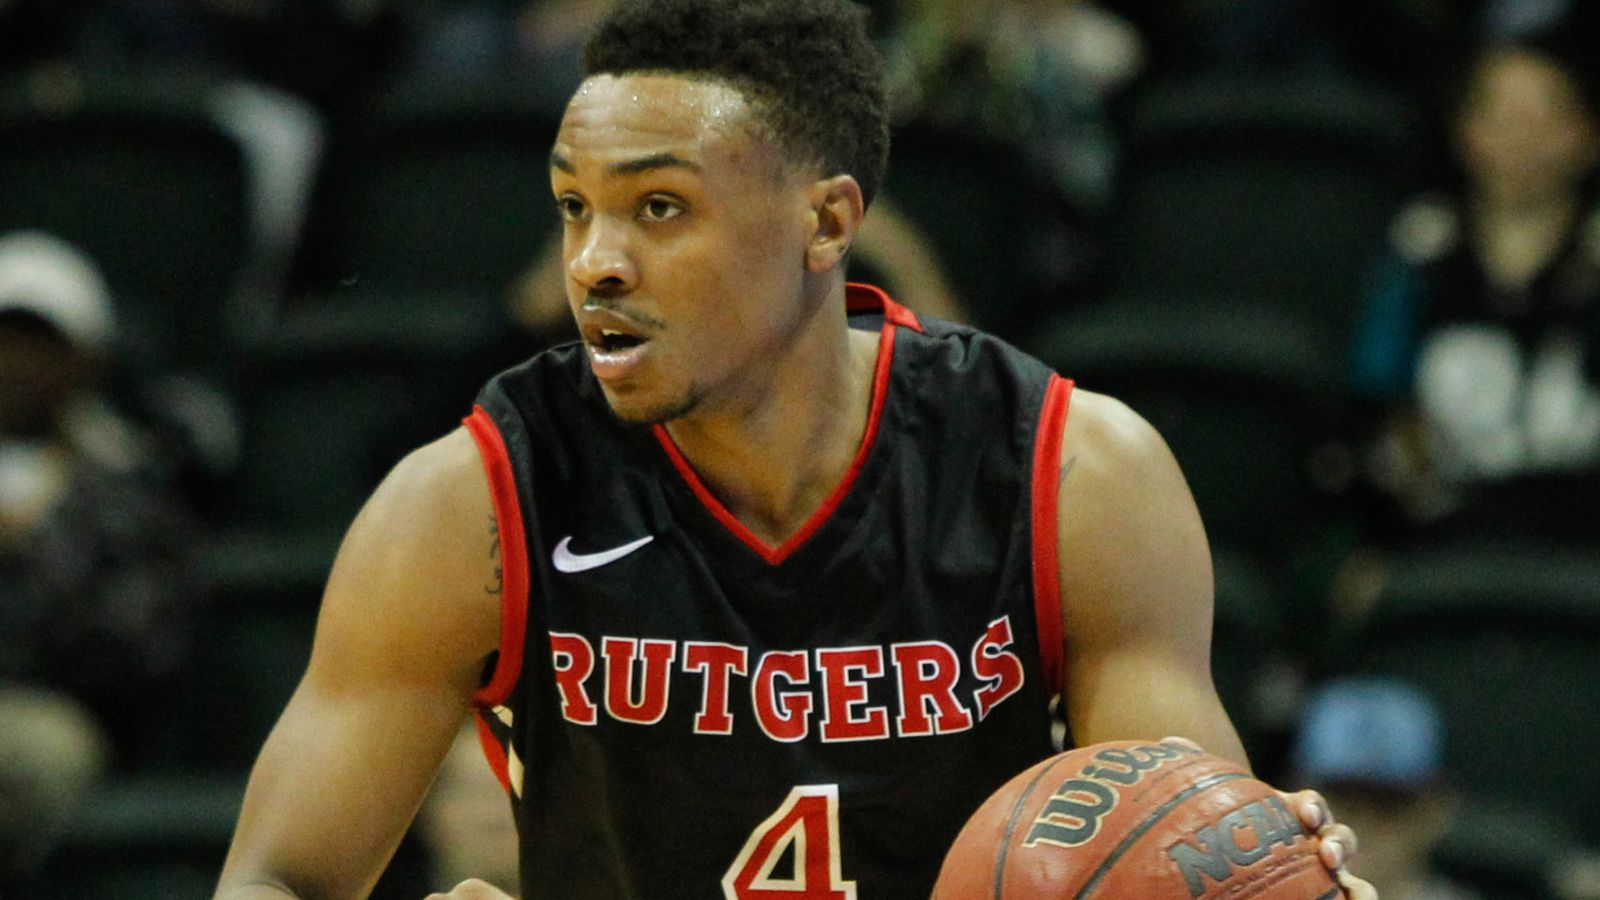 Rutgers Basketball: Breaking Down the Depth - On the Banks